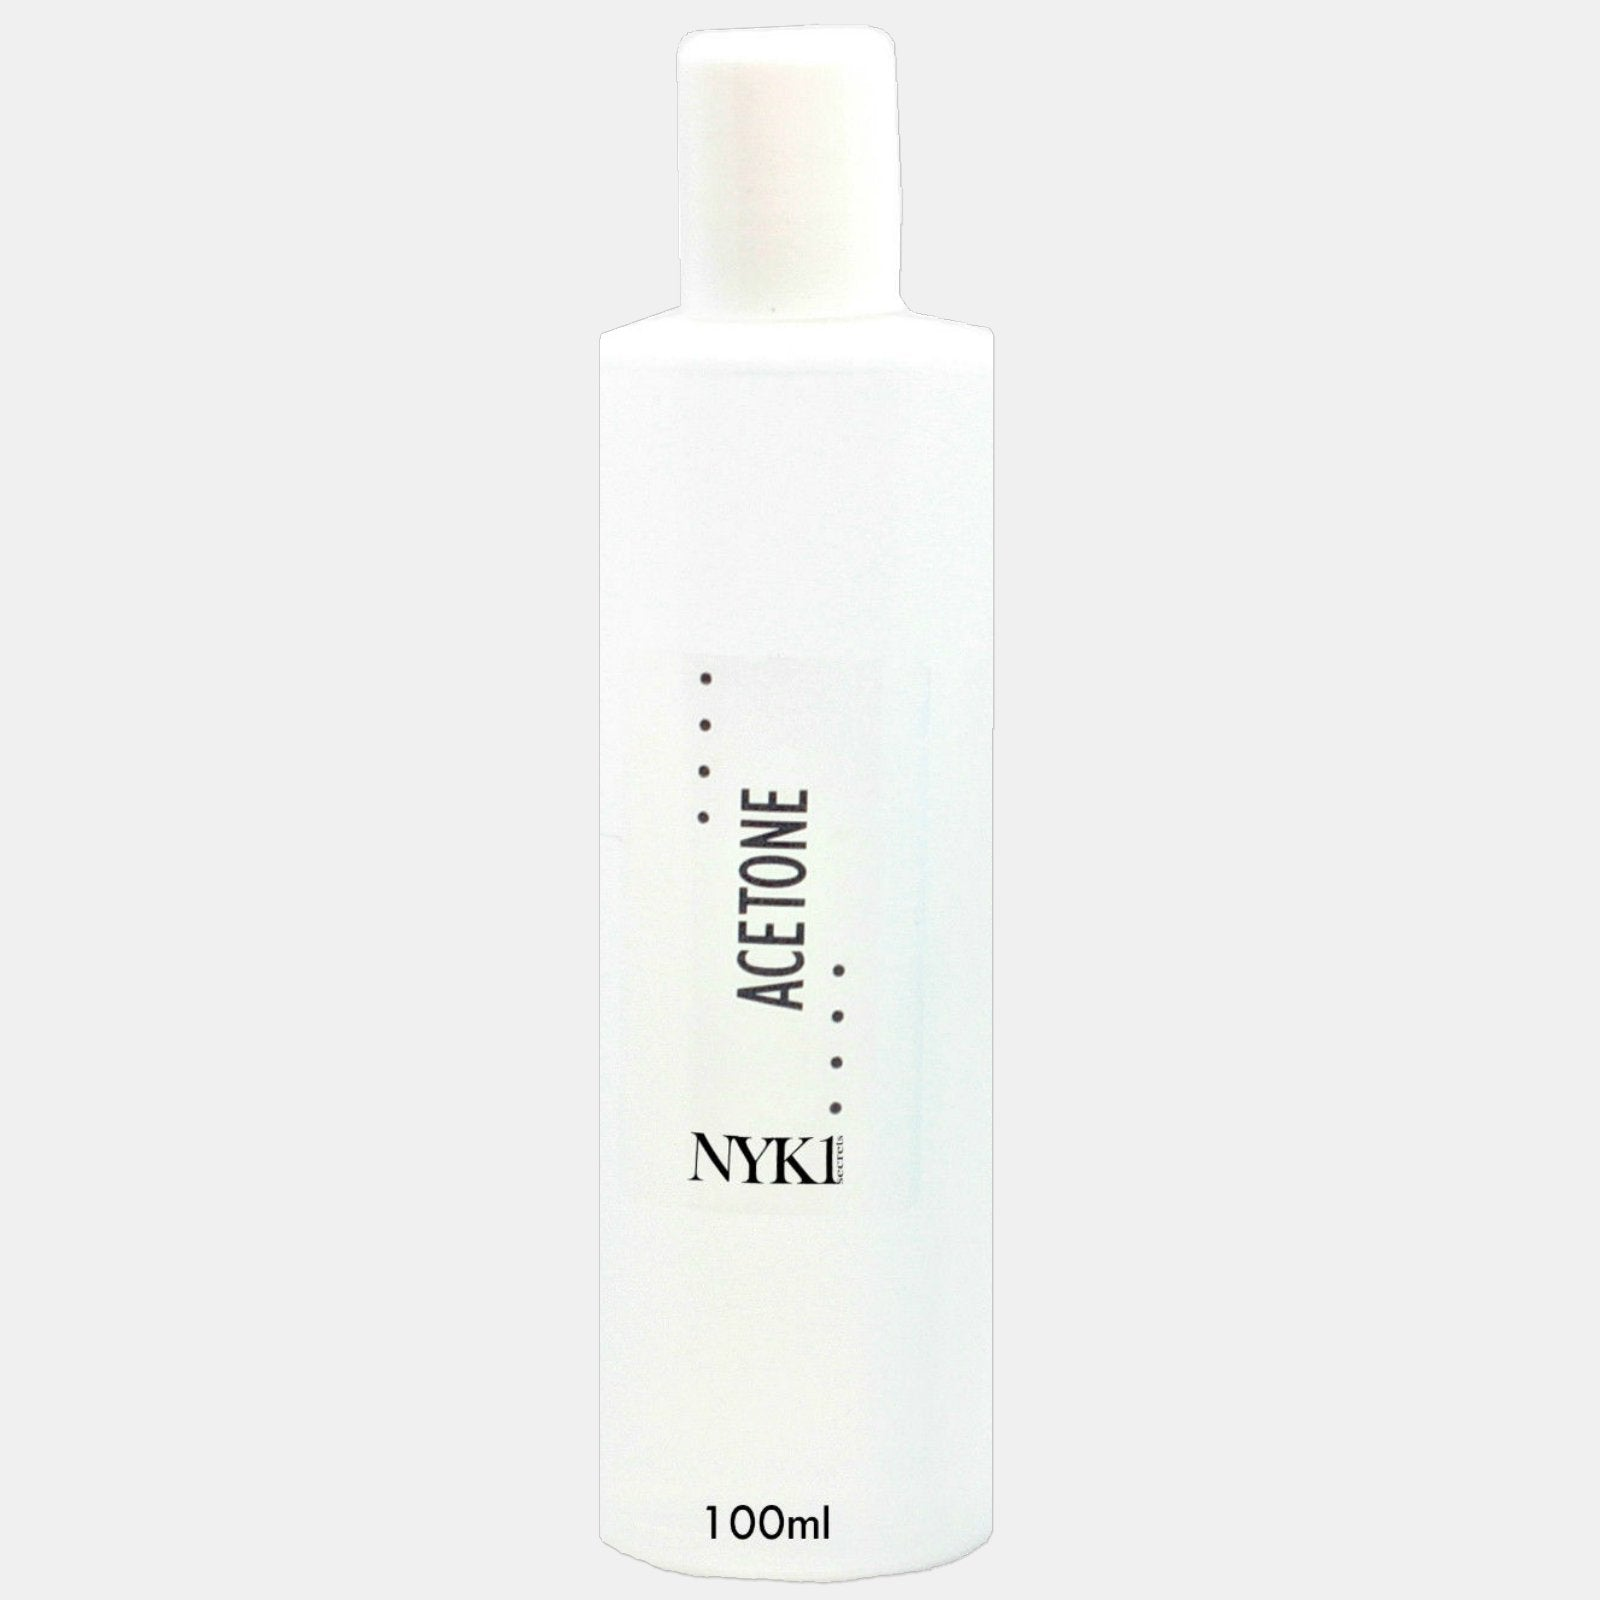 Pure Acetone soak gel nail polish remover from NYK1